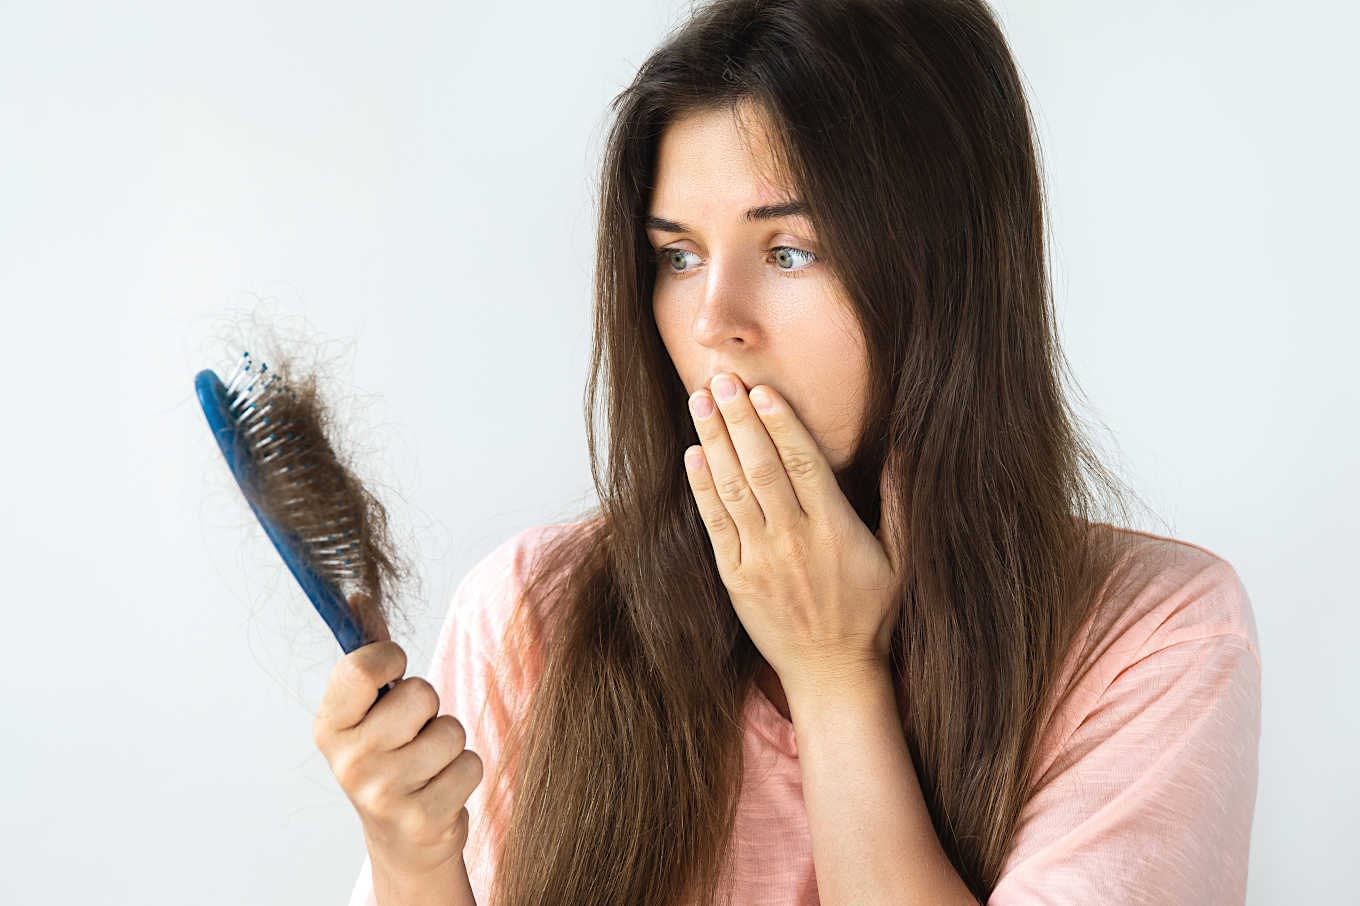 woman hair loss brush